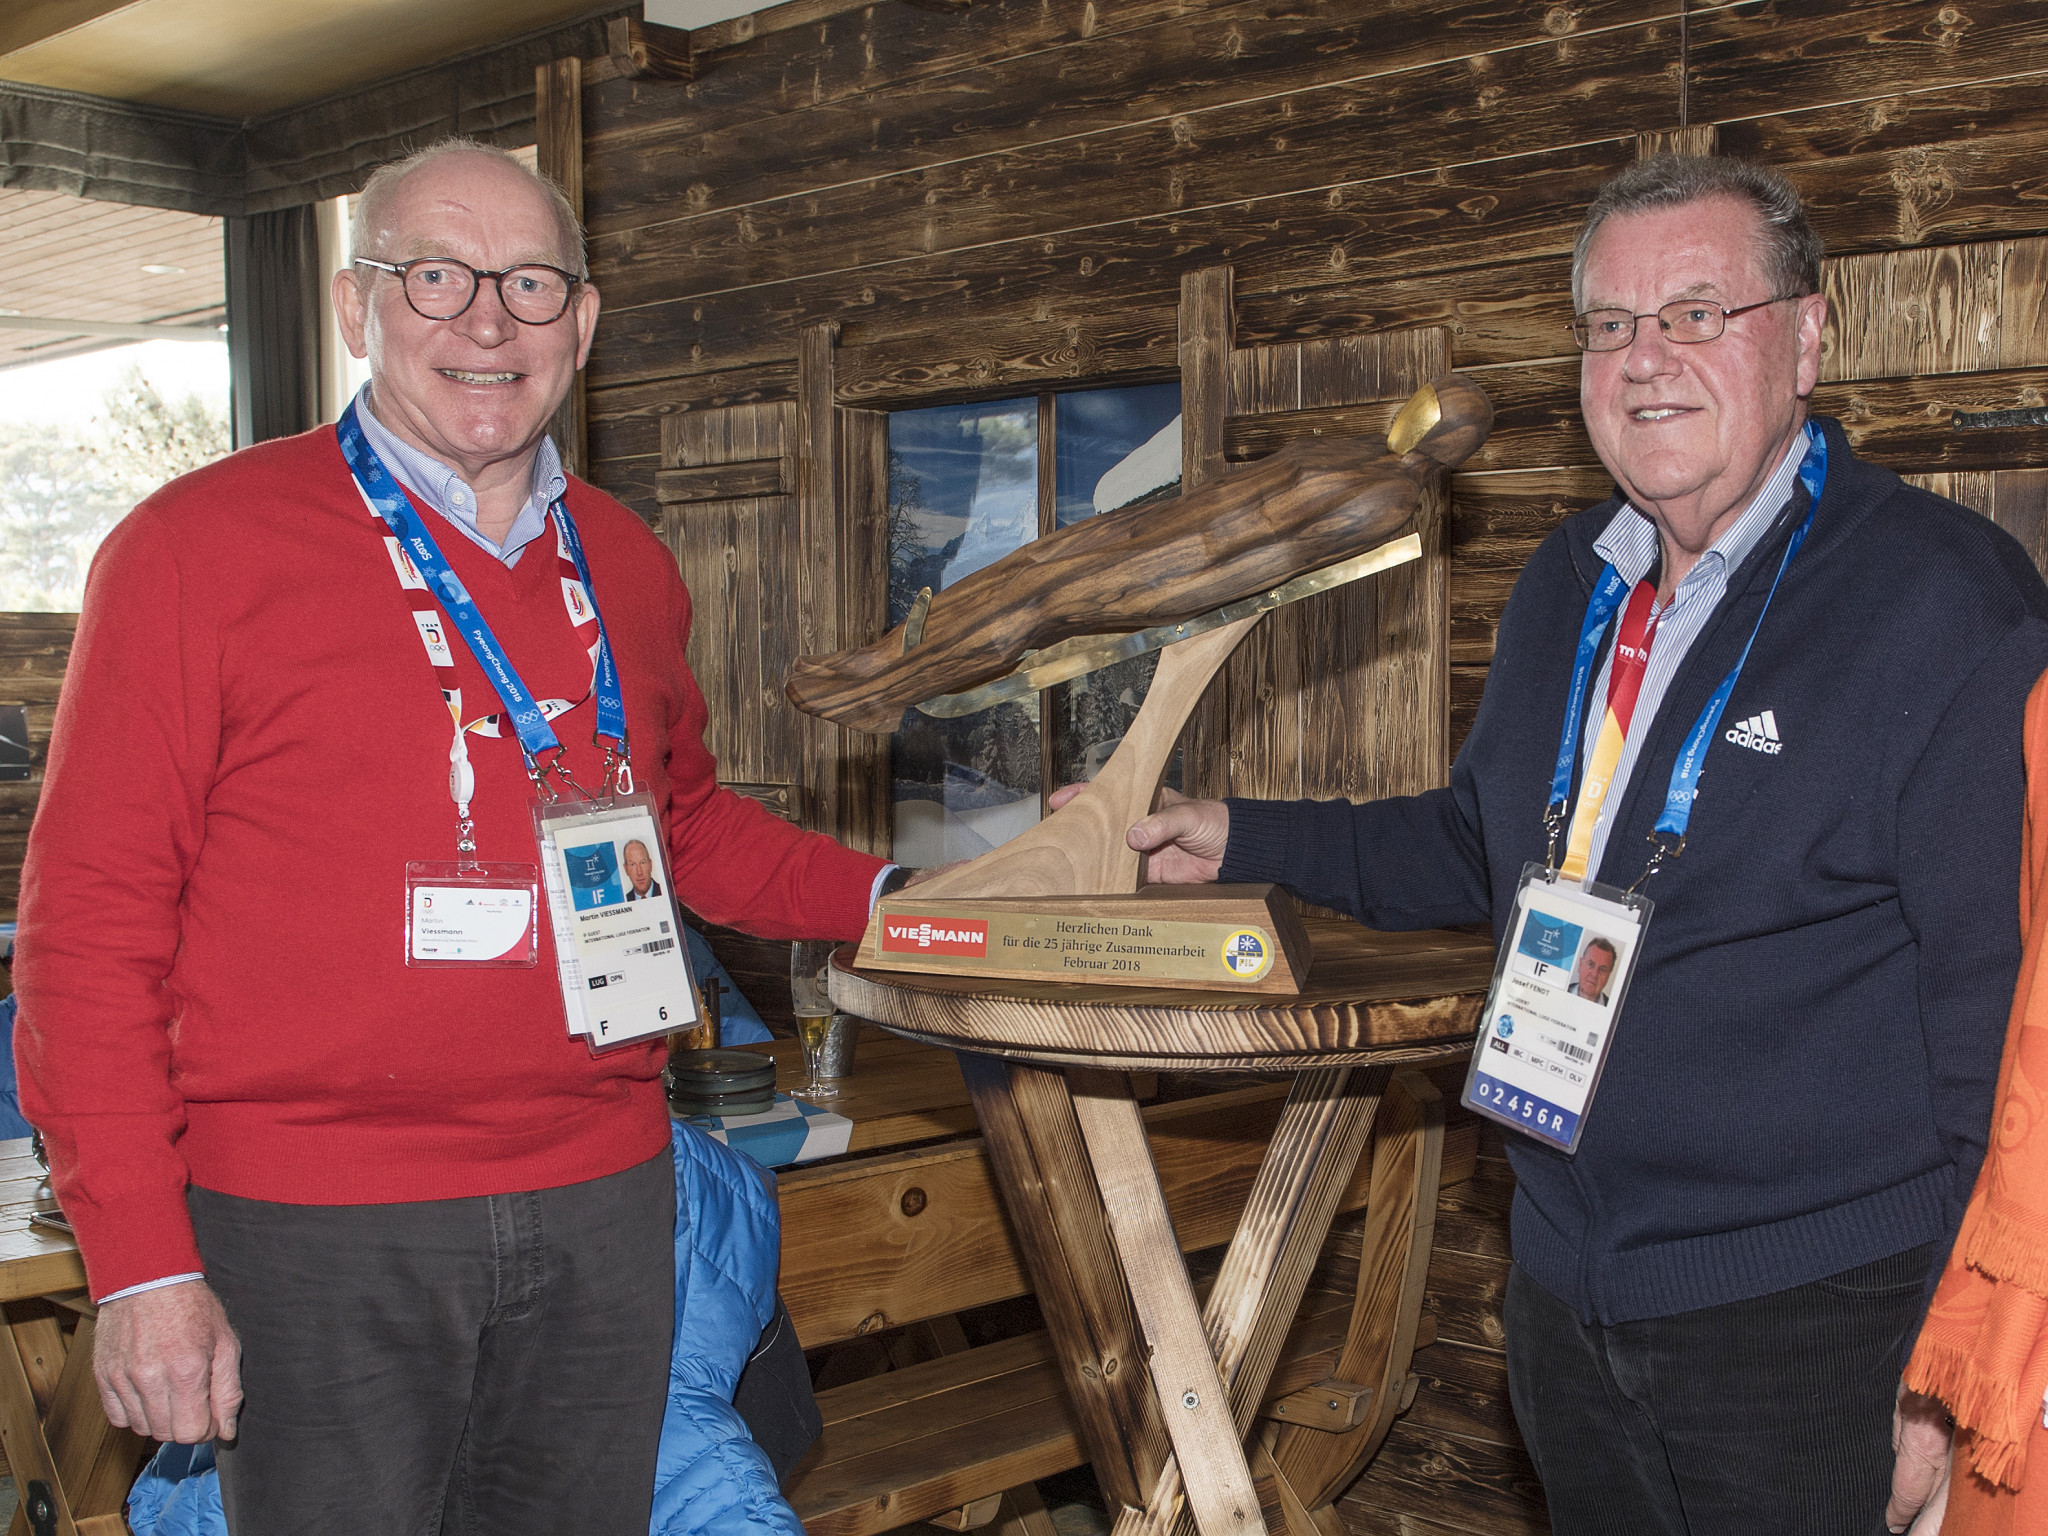 The hand-crafted sled was presented to Martin Viessmann, left, by FIL President Josef Fendt, right, during the Pyeongchang 2018 Winter Olympic Games ©FIL